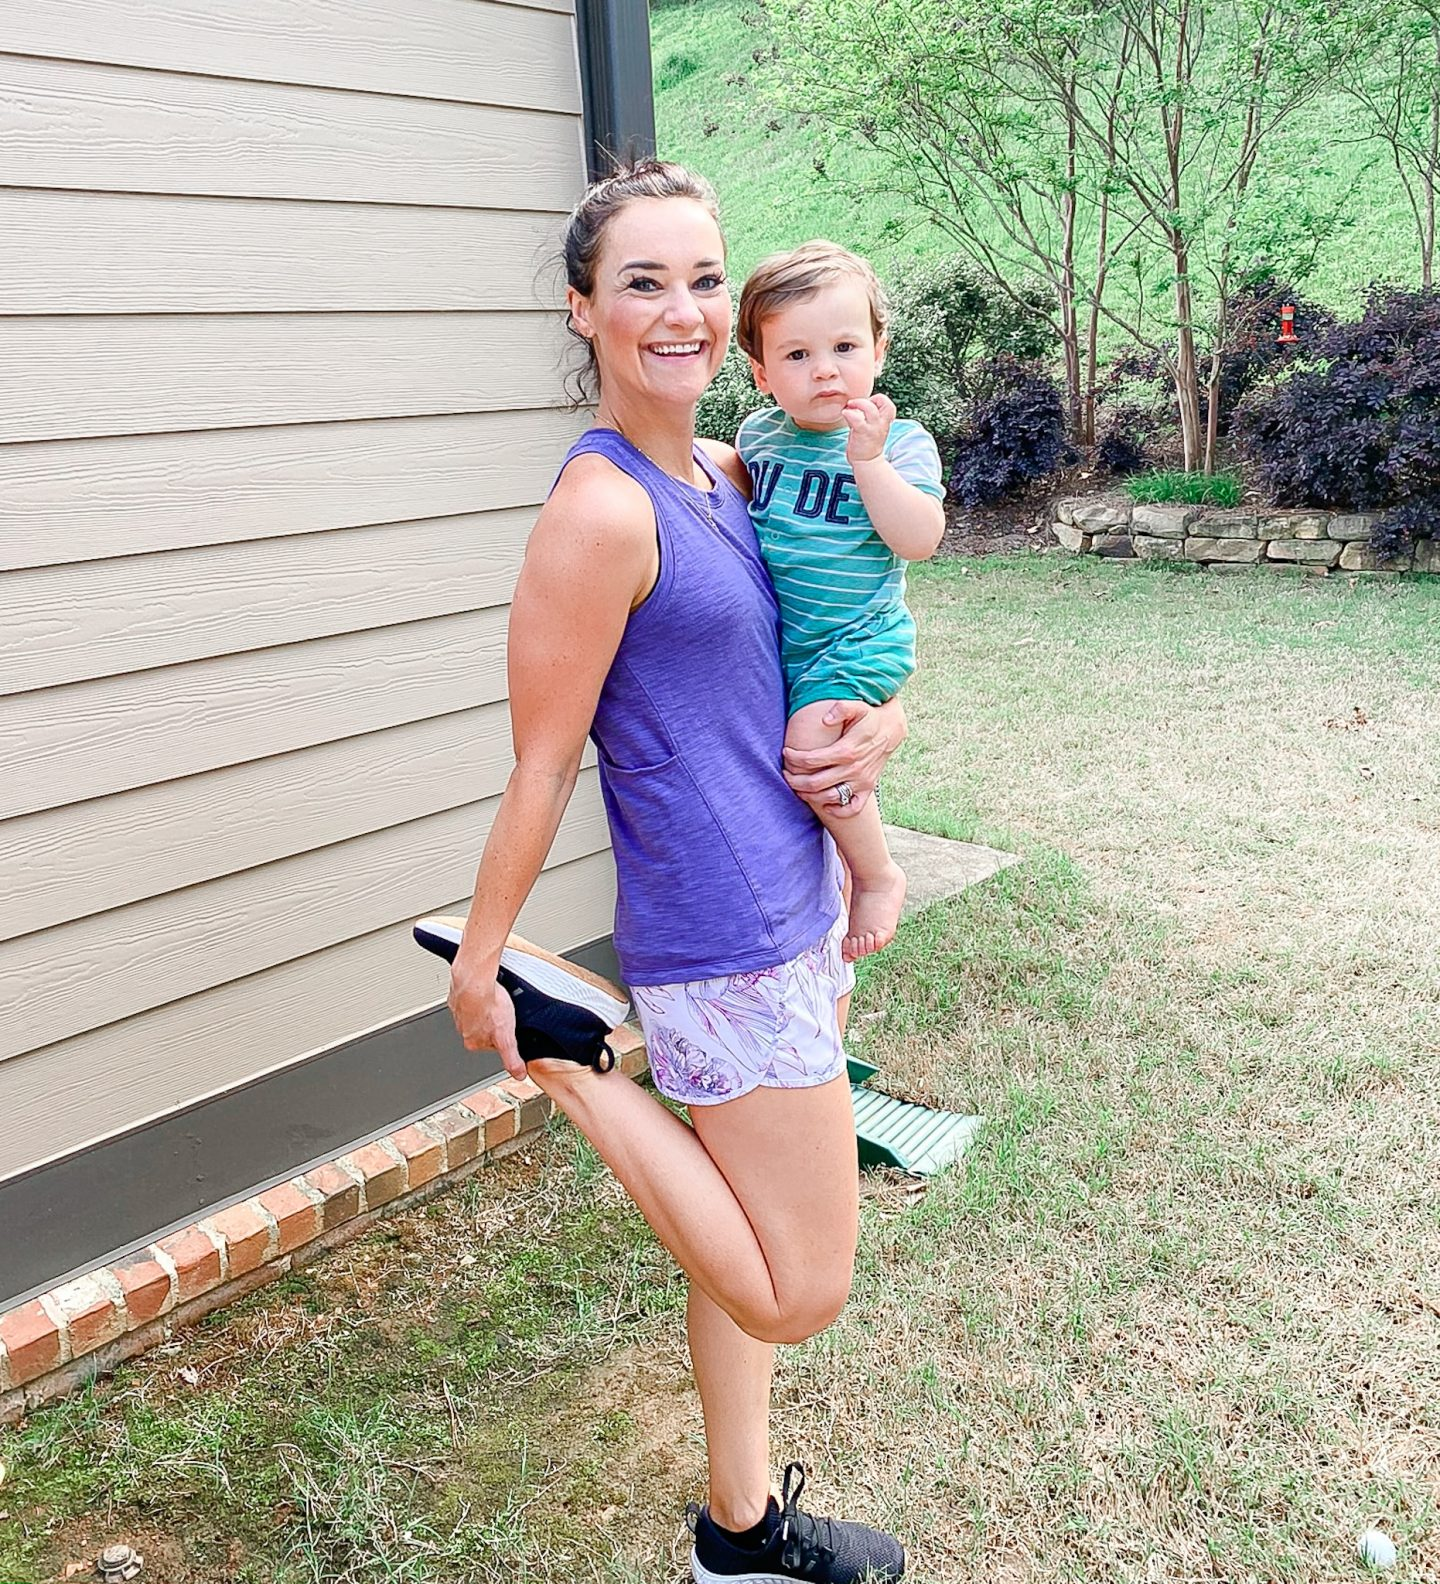 Best Online Barre Workout by Alabama Health + Fitness blogger, Heather Brown // My Life Well Loved